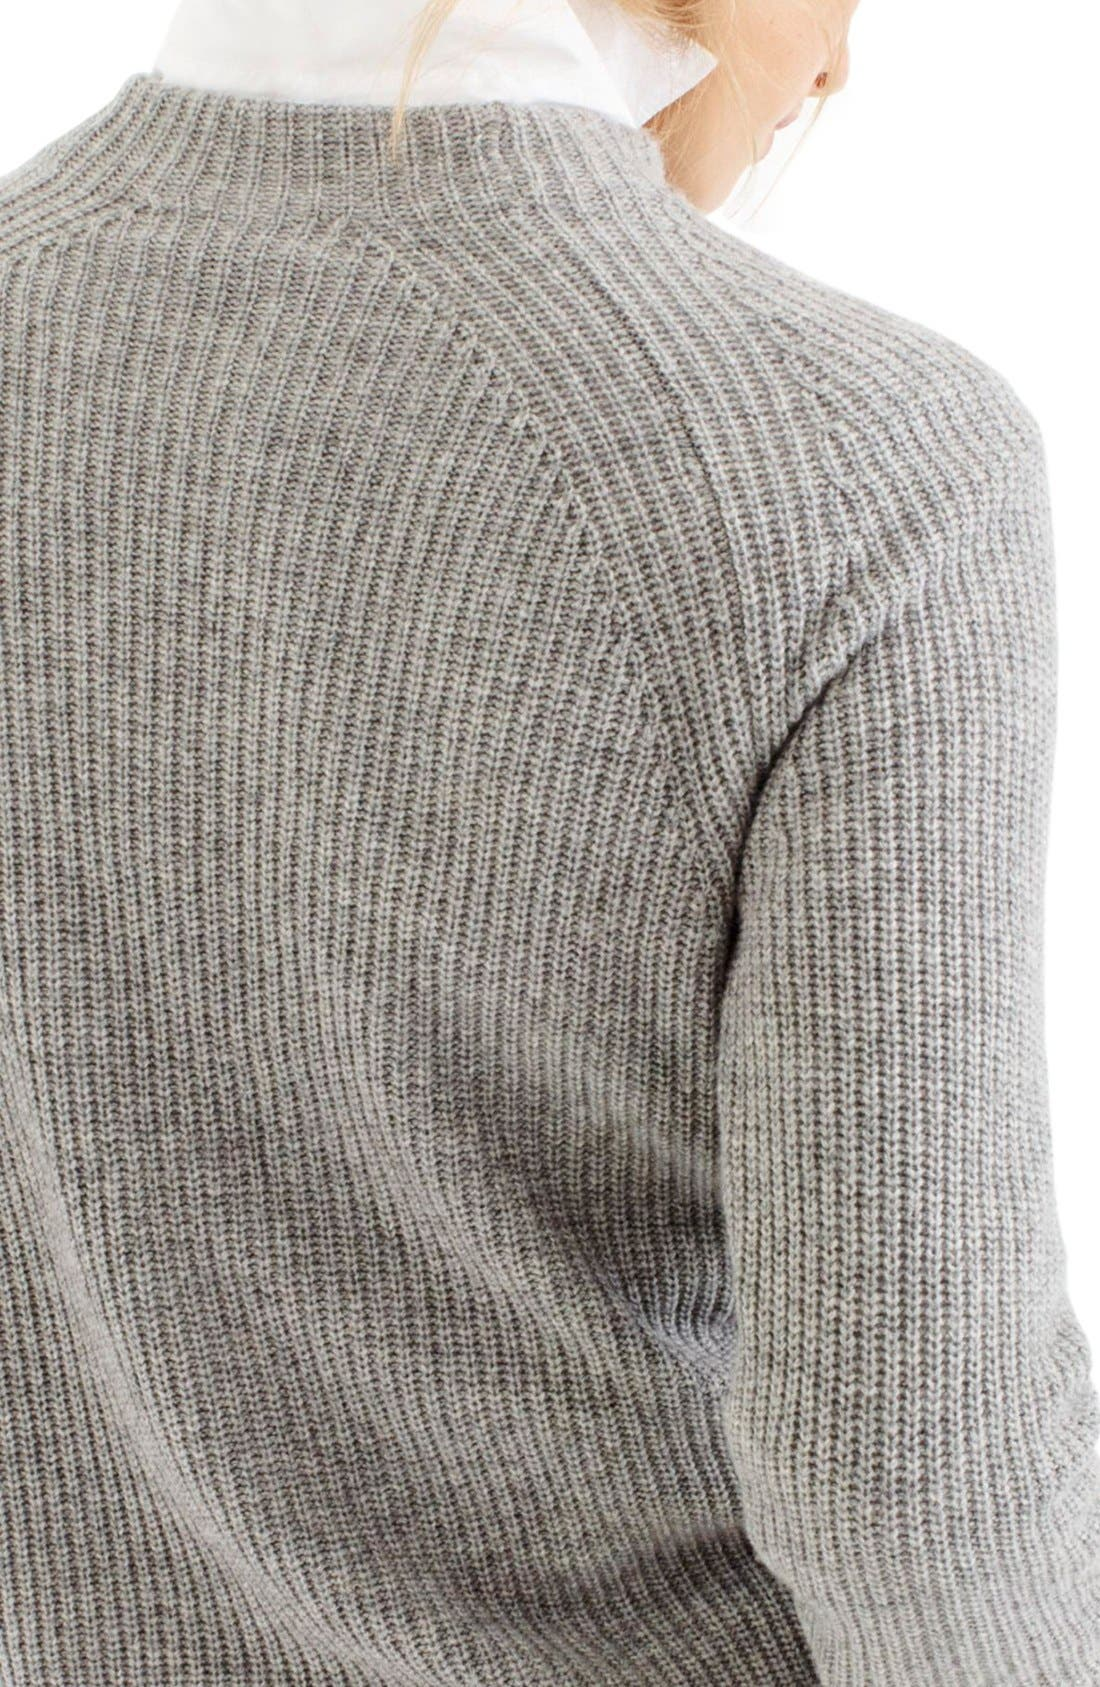 Gayle Tie Neck Sweater,                             Alternate thumbnail 21, color,